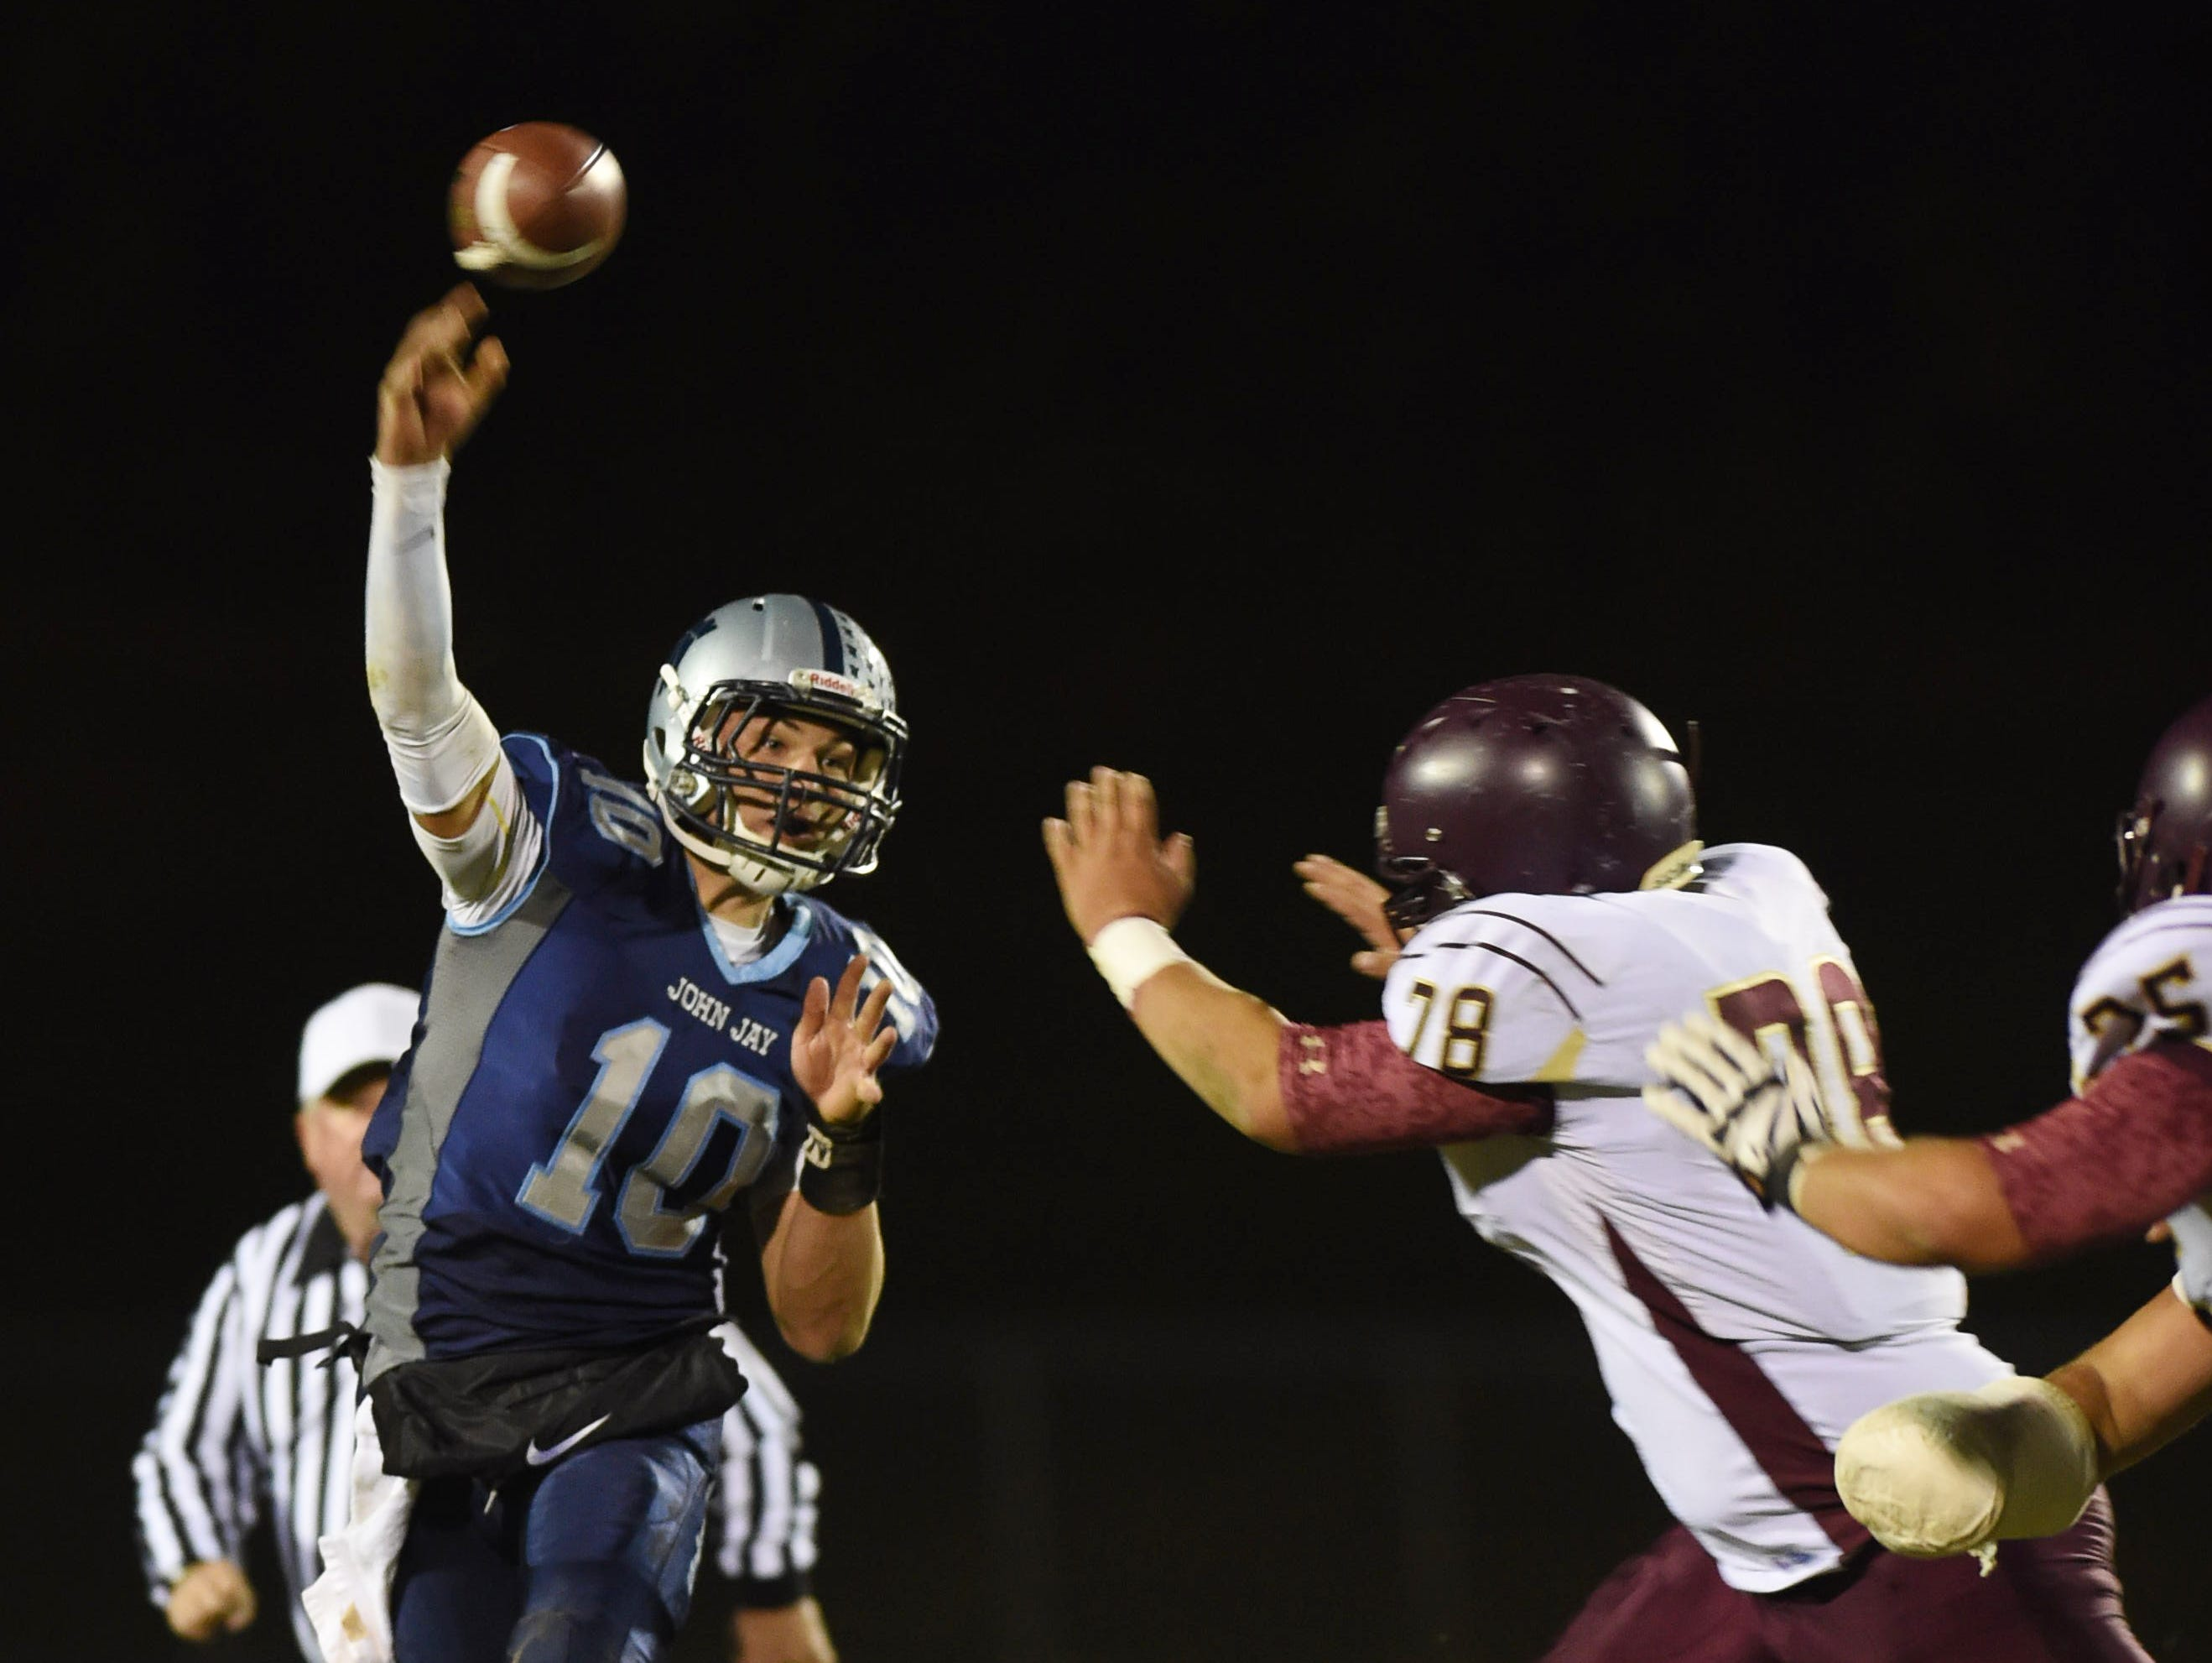 John Jay's Ryan Schumacher passes the ball as Arlington's Jordan Valerious closes in on him during Friday's game in Wiccopee.